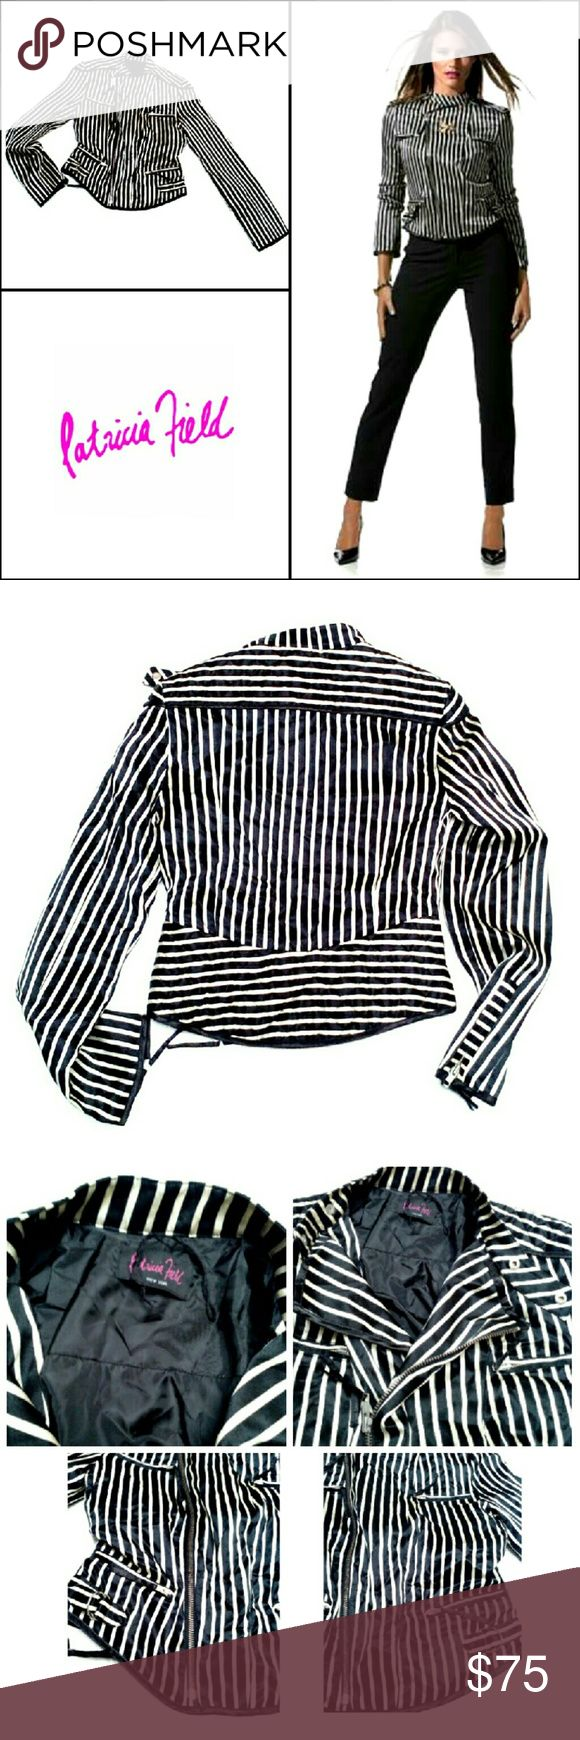 Spotted while shopping on Poshmark: PATRICIA FIELD BLACK & WHITE STRIPE SILK JACKET! #poshmark #fashion #shopping #style #PATRICIA FIELD #Jackets & Blazers